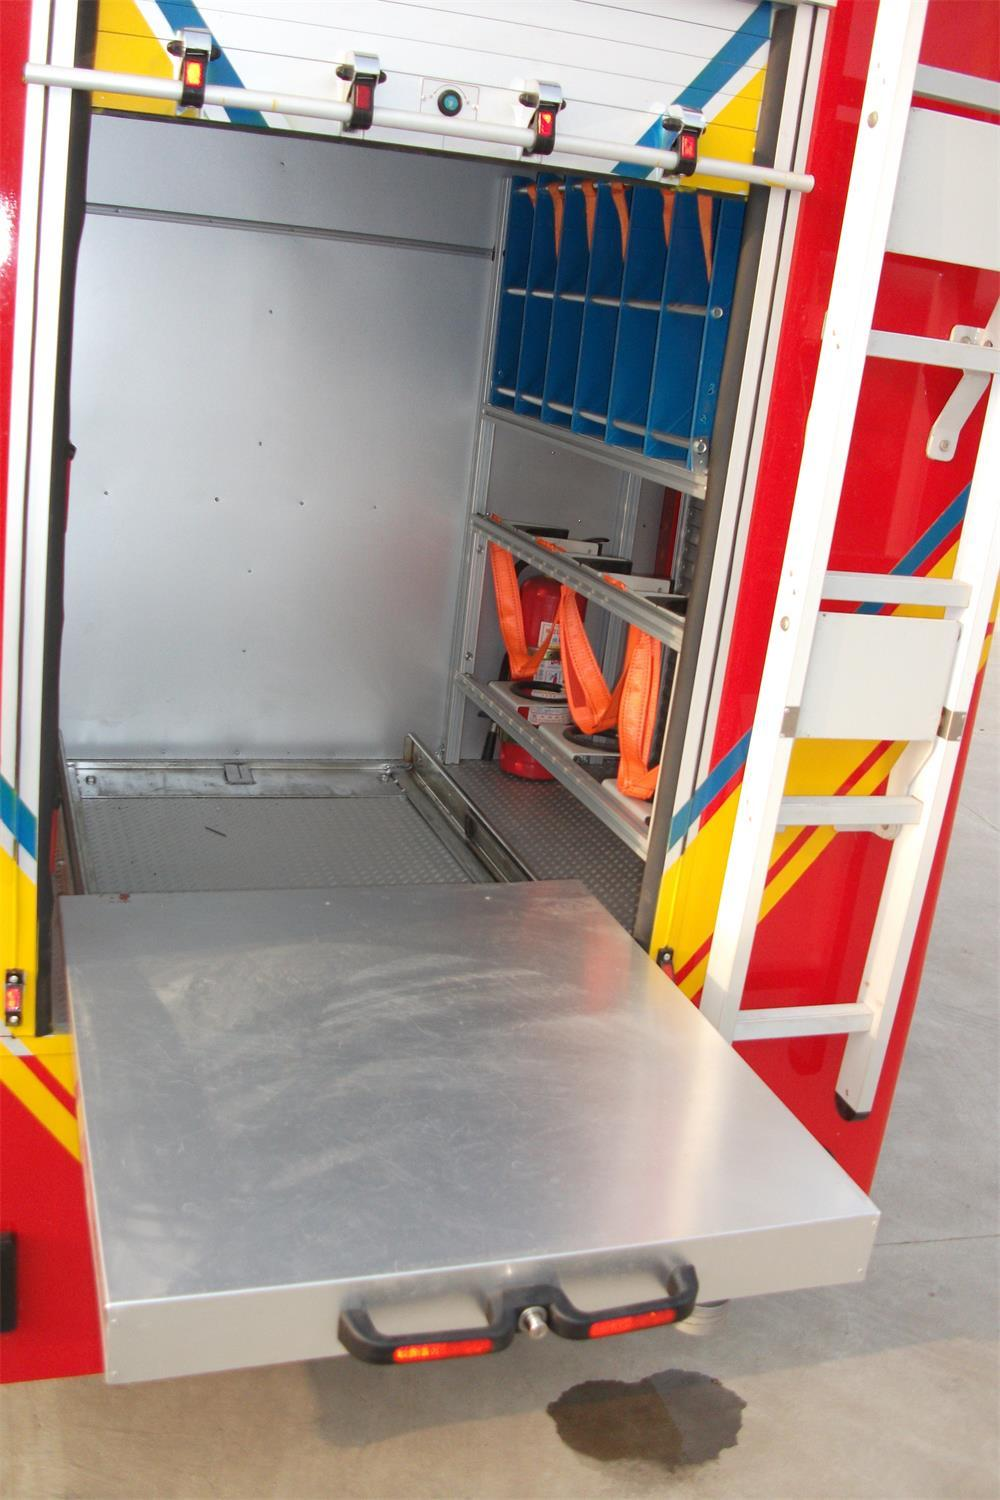 Fire Control Equipment Emergency Rescue Truck Inner Parts Vertical Pallets 3